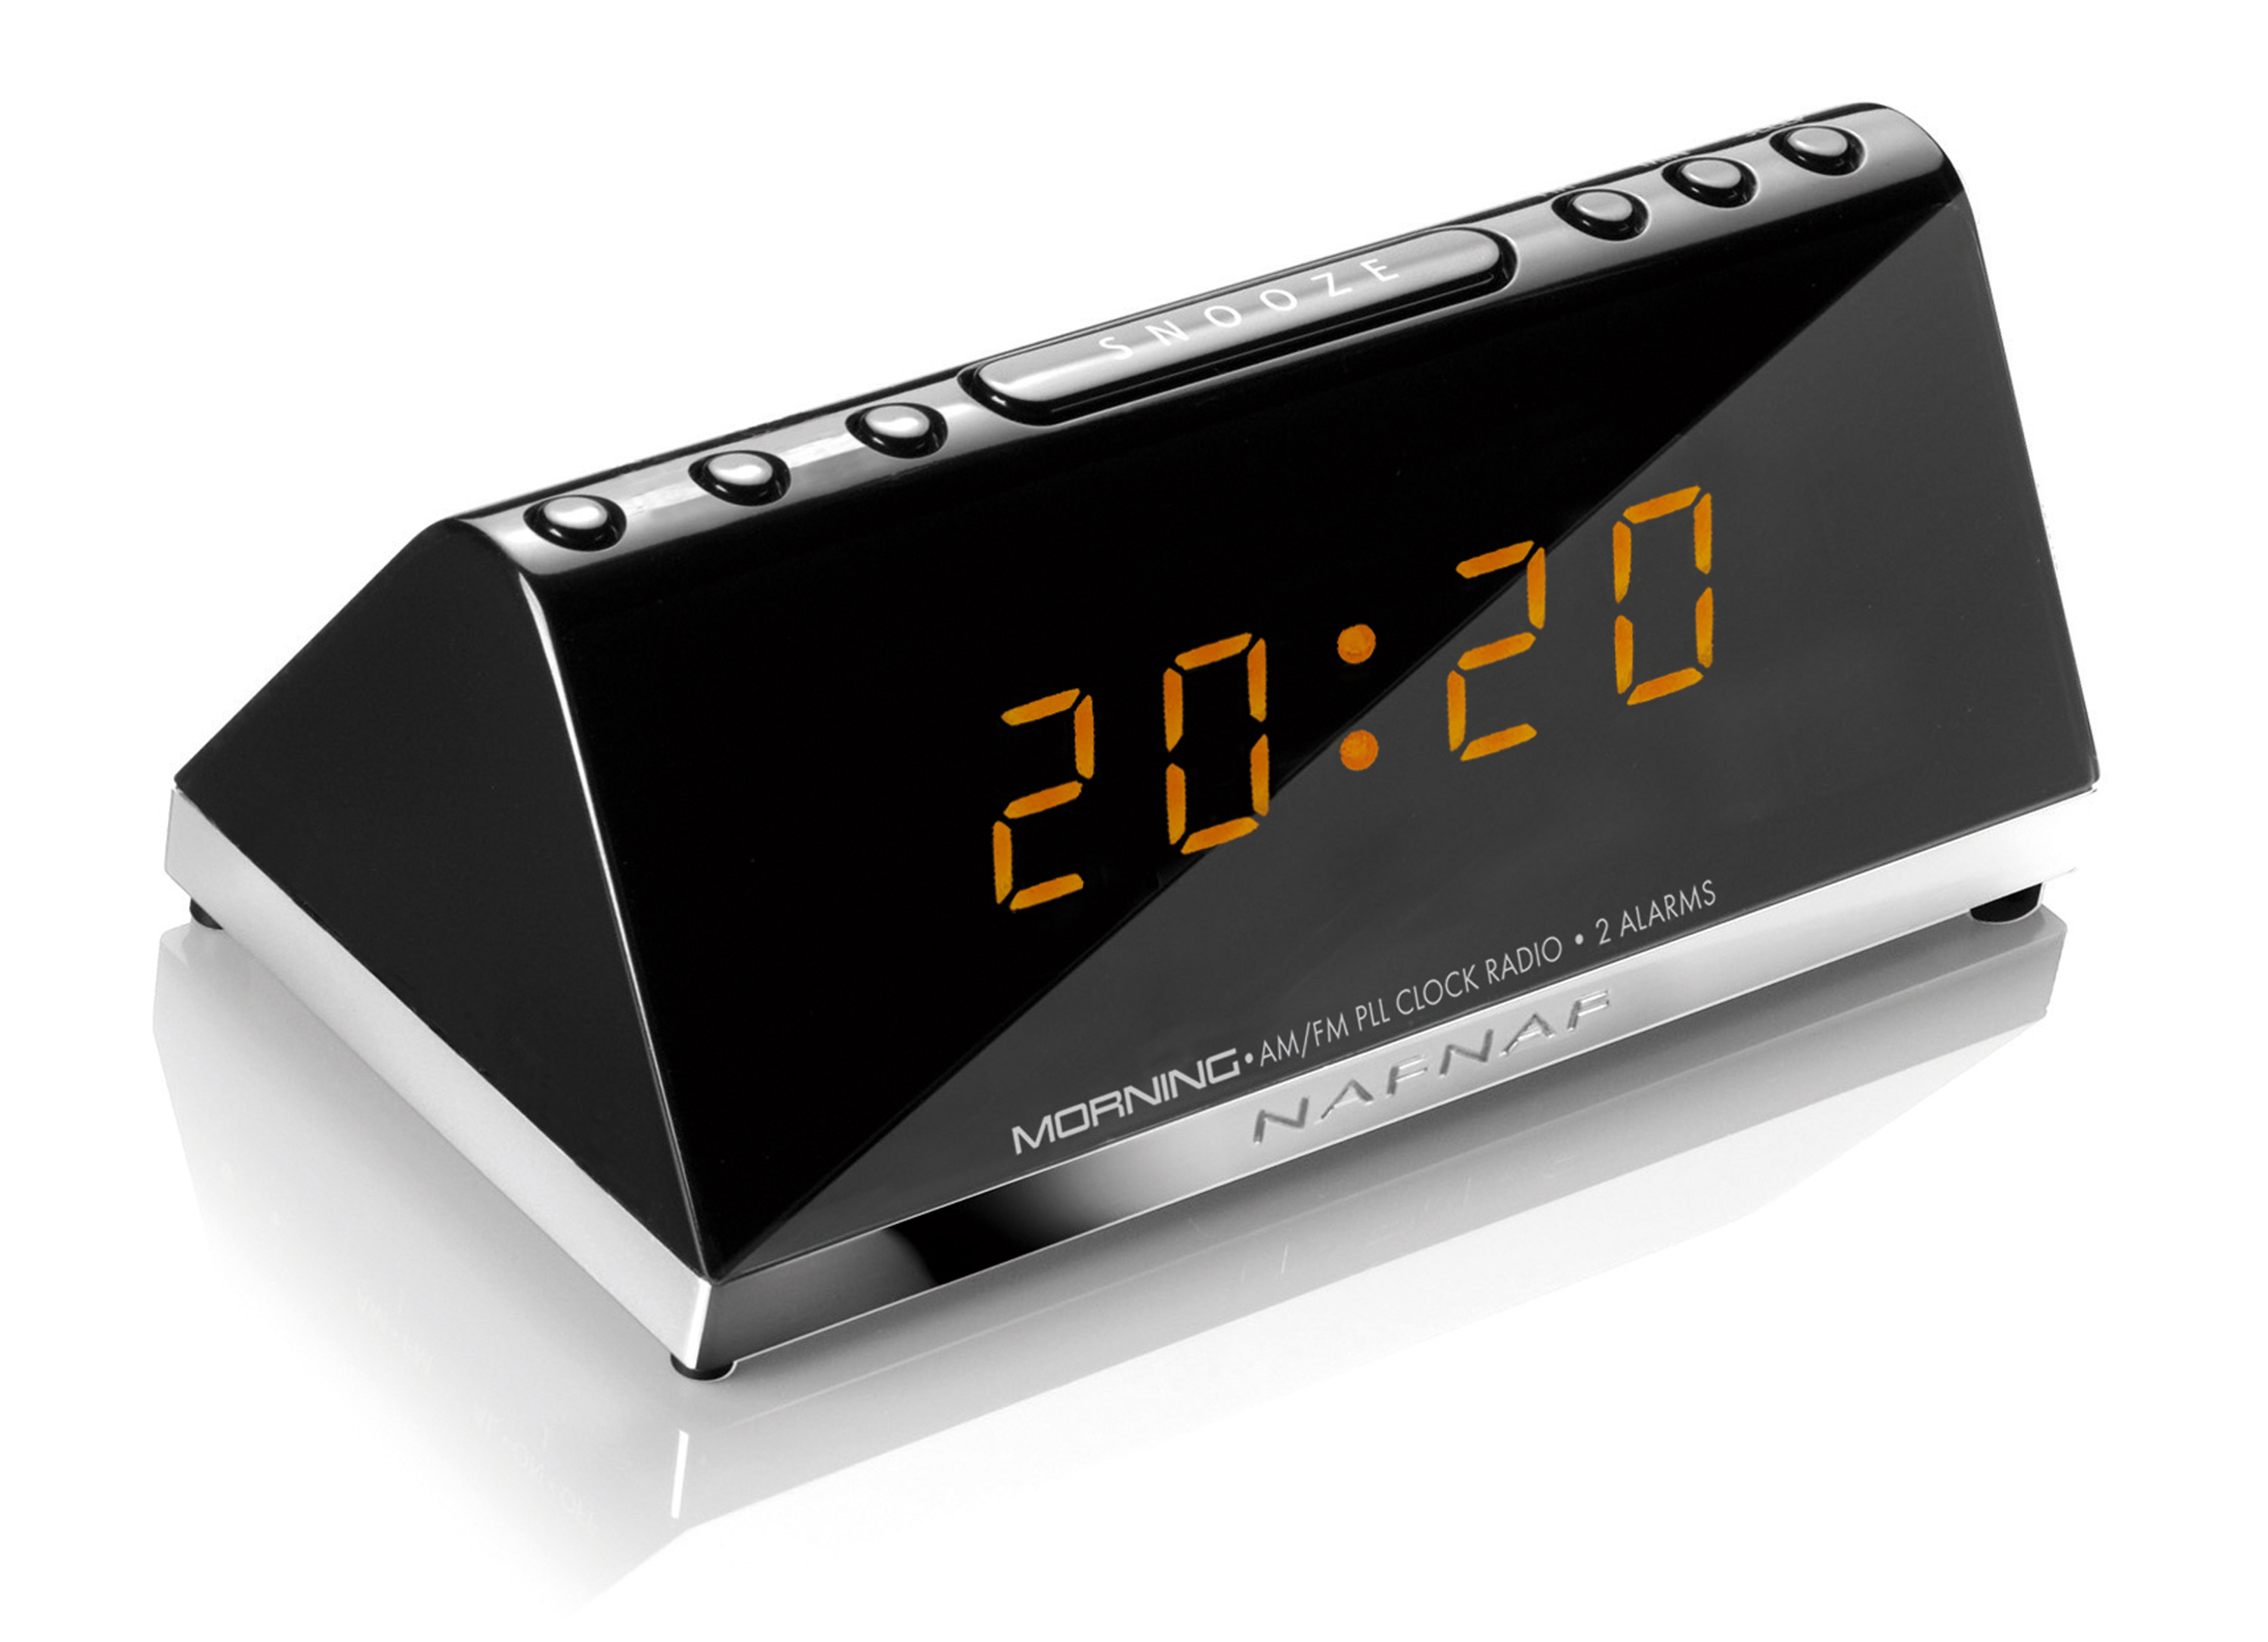 Morning v3, clockradio AM/FM buzzer, black, USB Charging